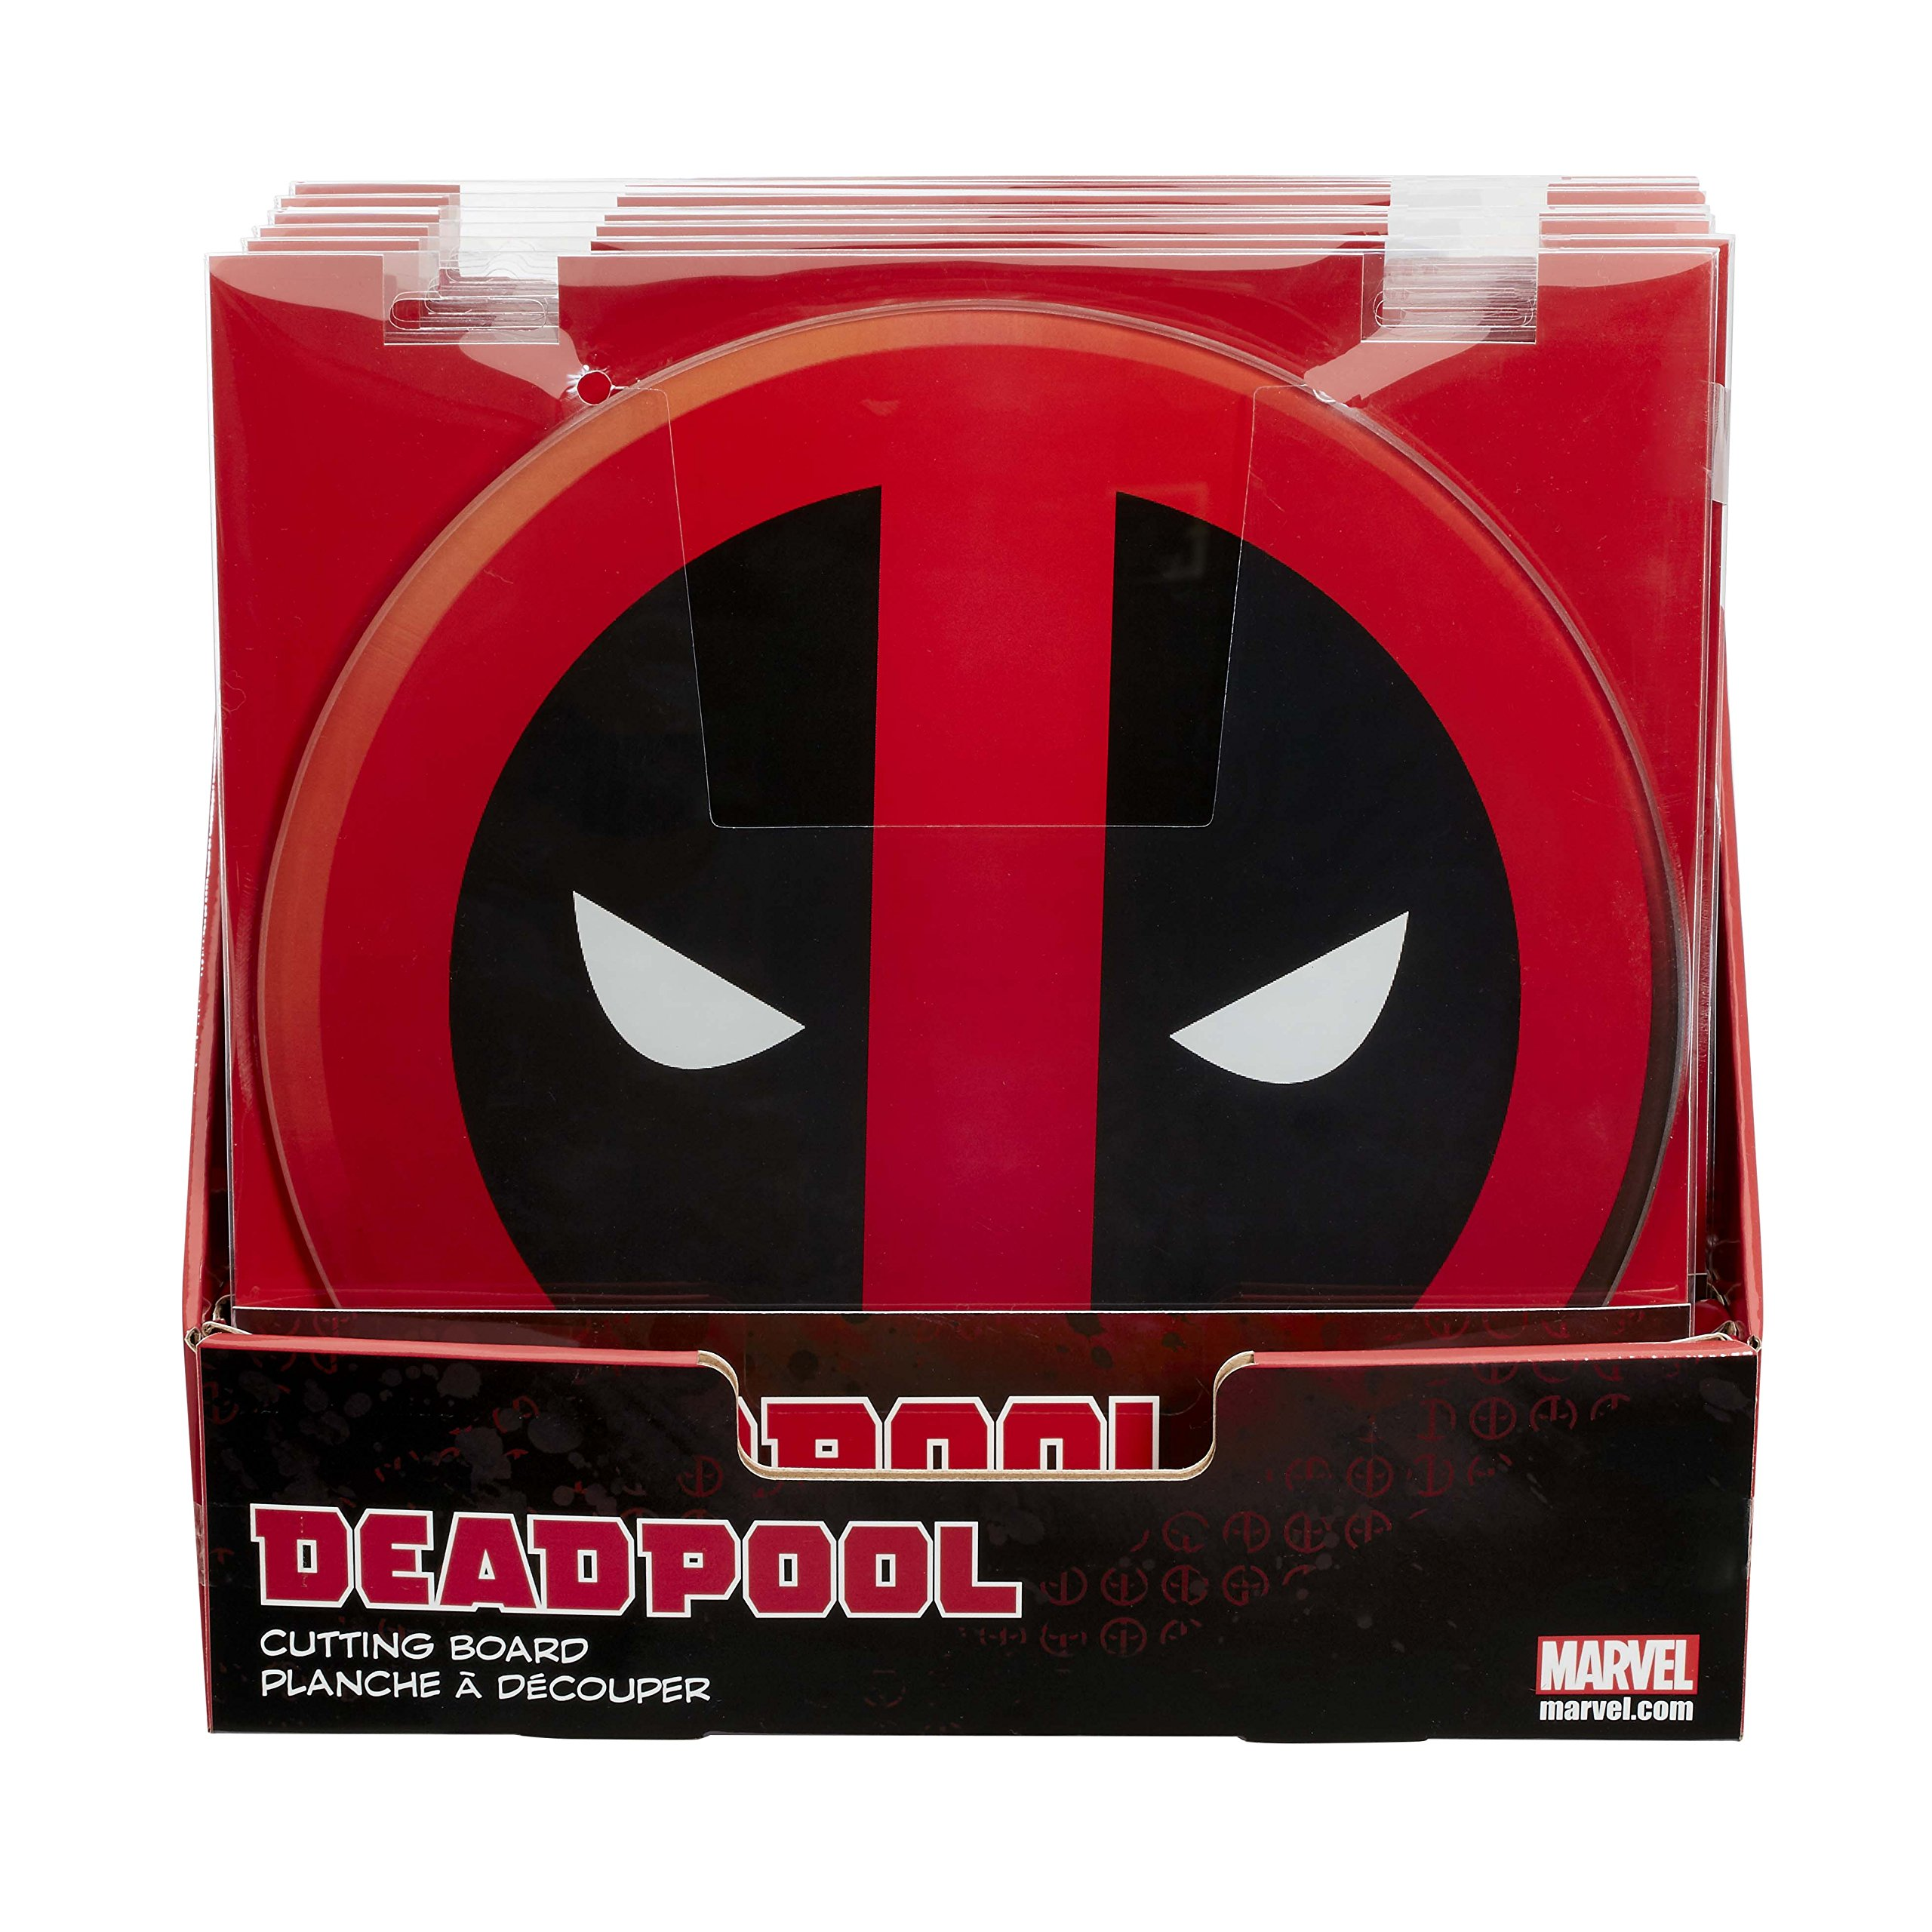 DEADPOOL Plate Set - Set of 4 Plates, all With Different Deadpool Action Poses on 8'' x 8'' Square Plate